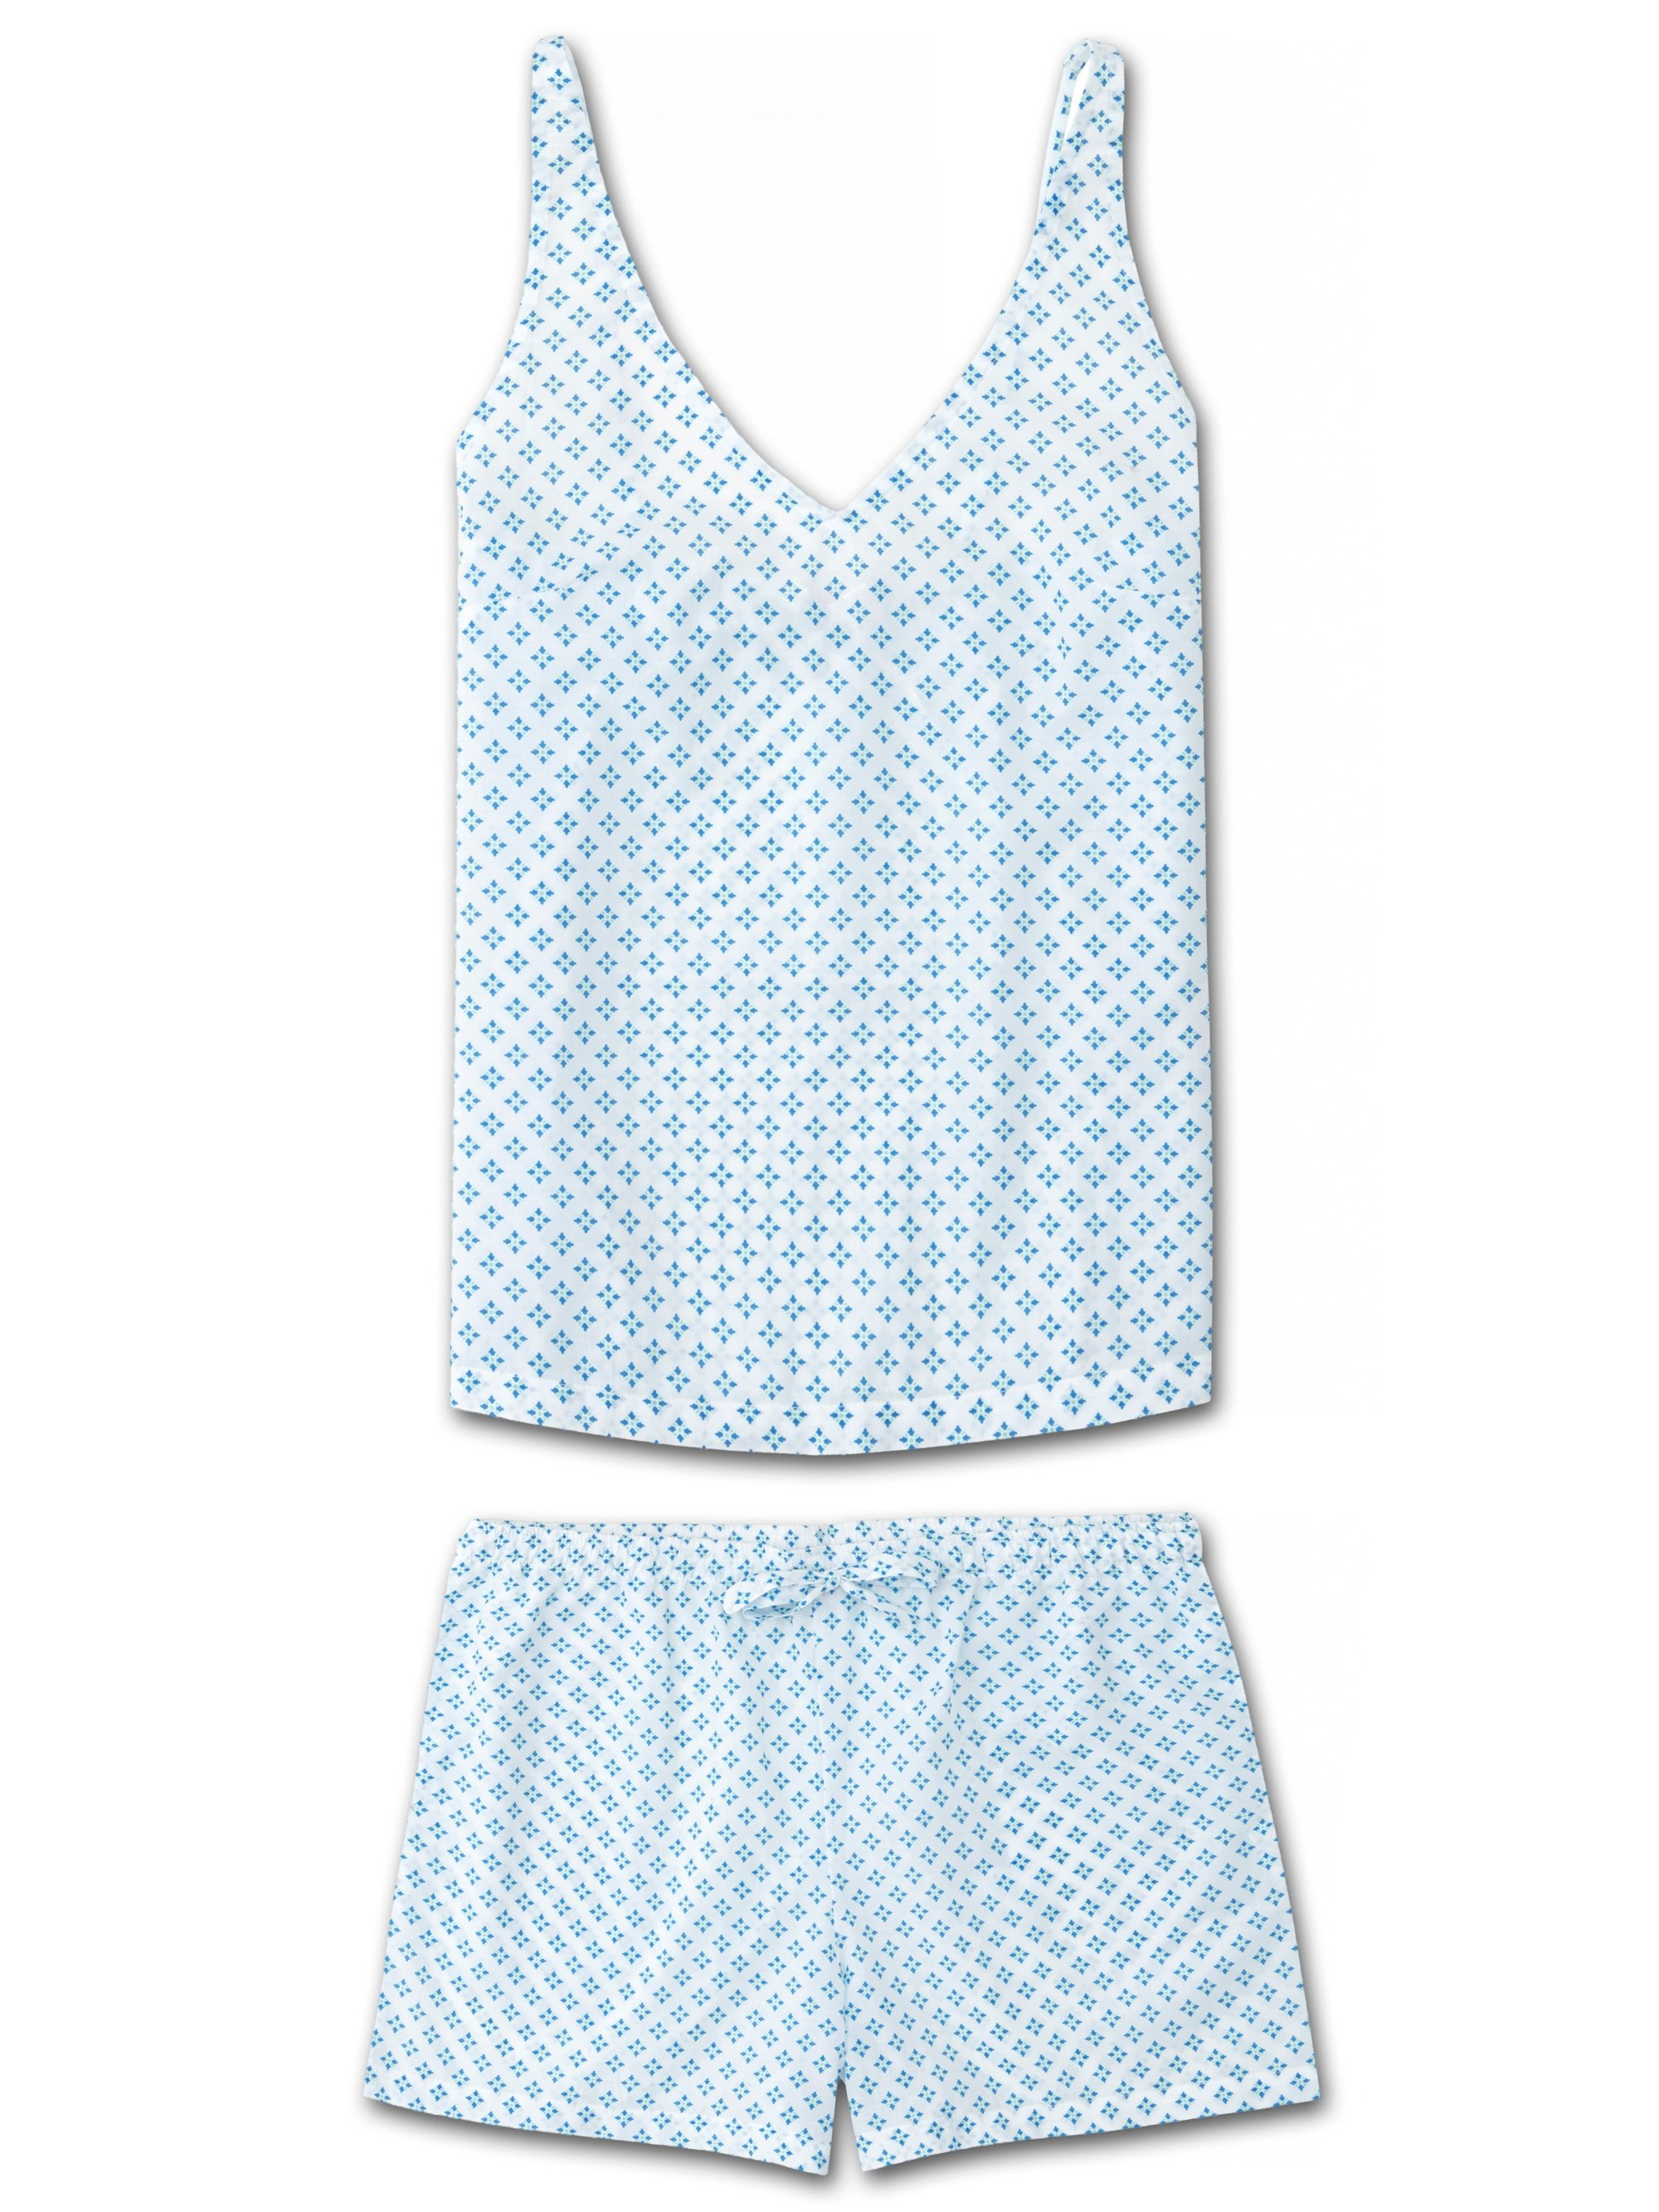 Women's Cami Short Pyjama Set Ledbury 32 Cotton Batiste White